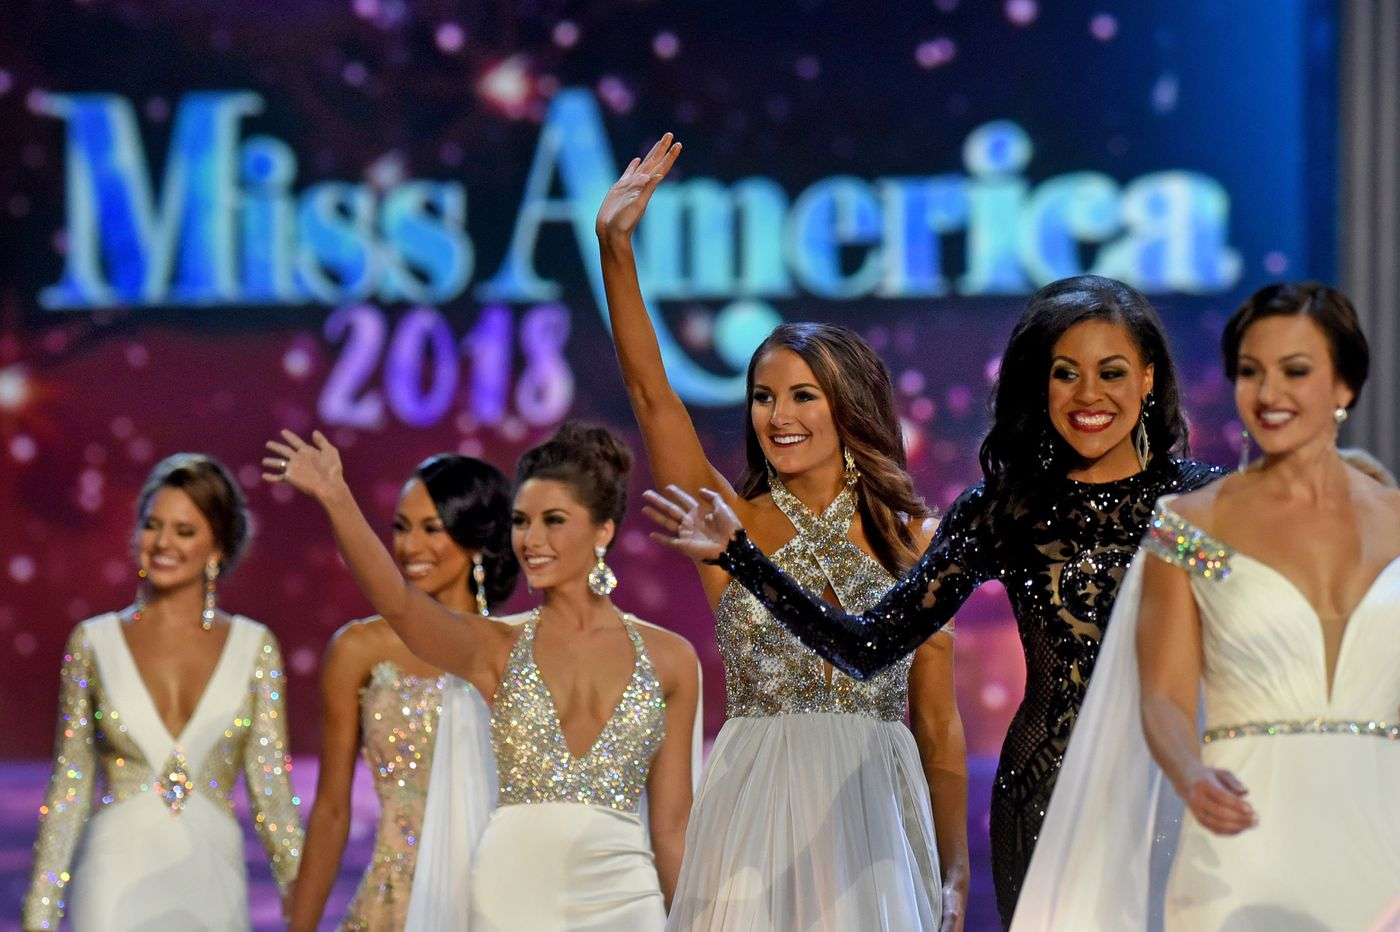 Miss America has a history of evolution. Nixing swimsuits is just the latest step forward | Opinion